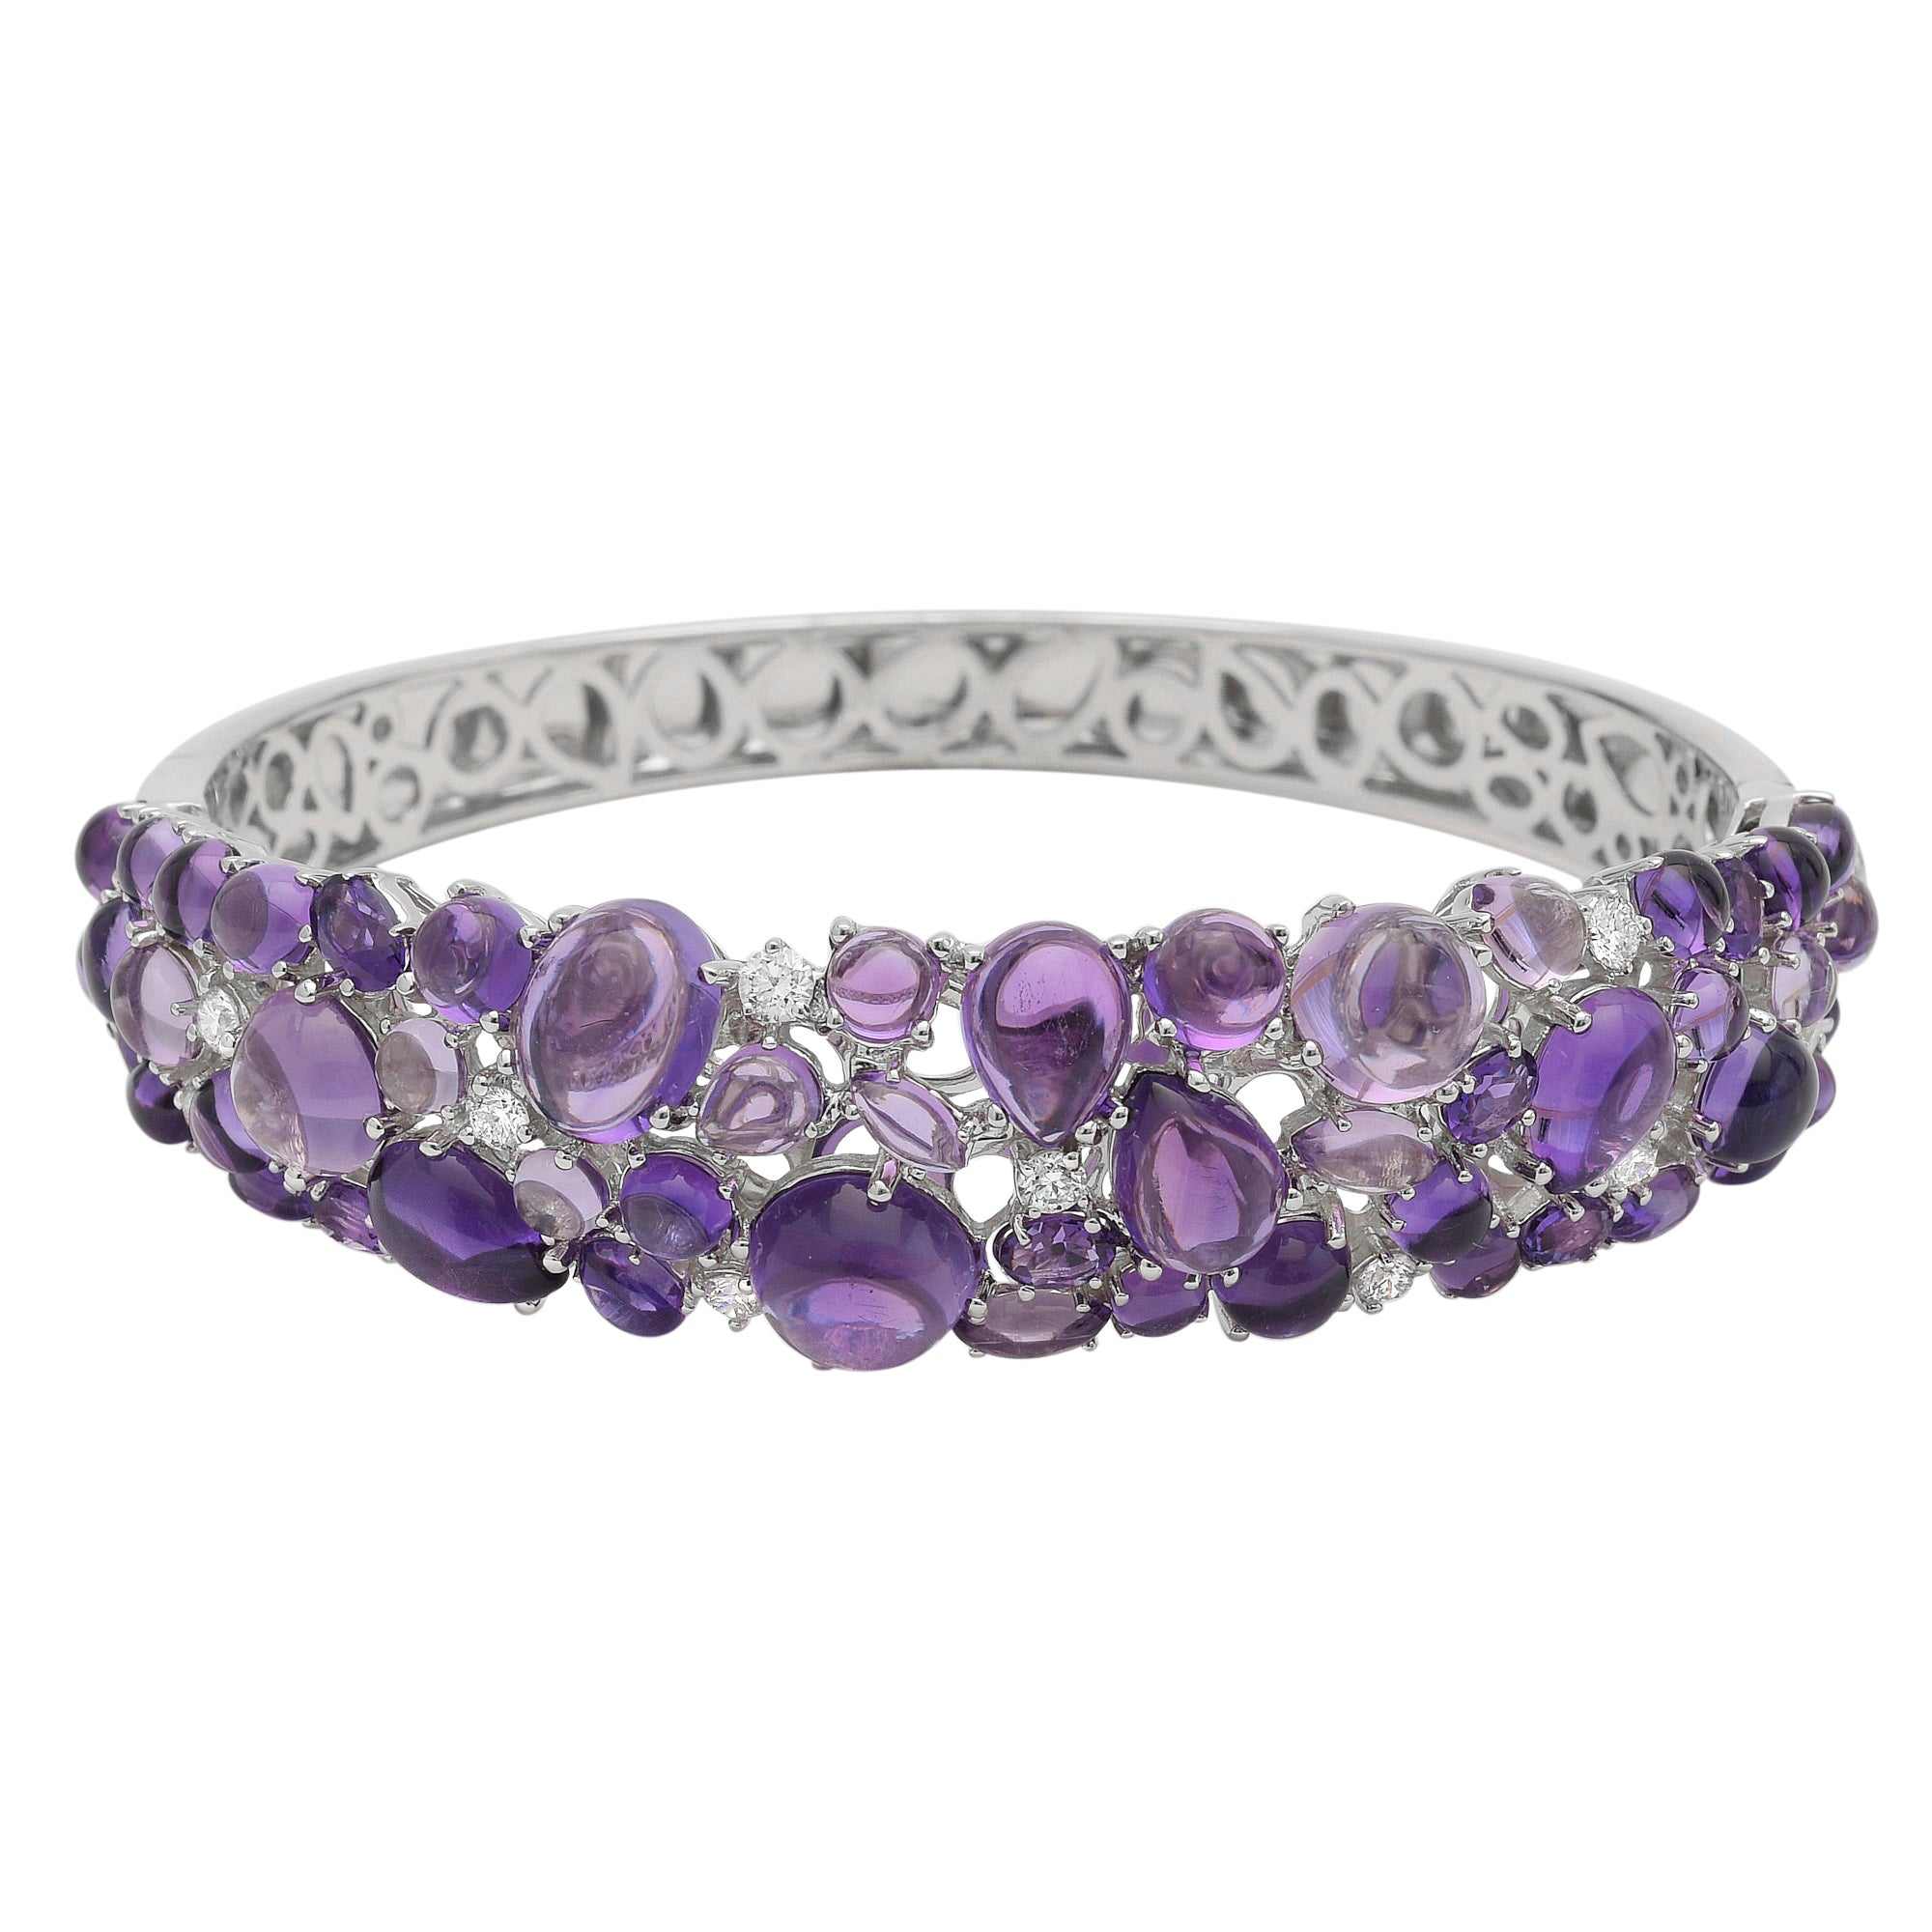 bangles jewelry beads bangle purple with bracelet in print sterling handprint bracelets footprint web product amethyst silver category matanai